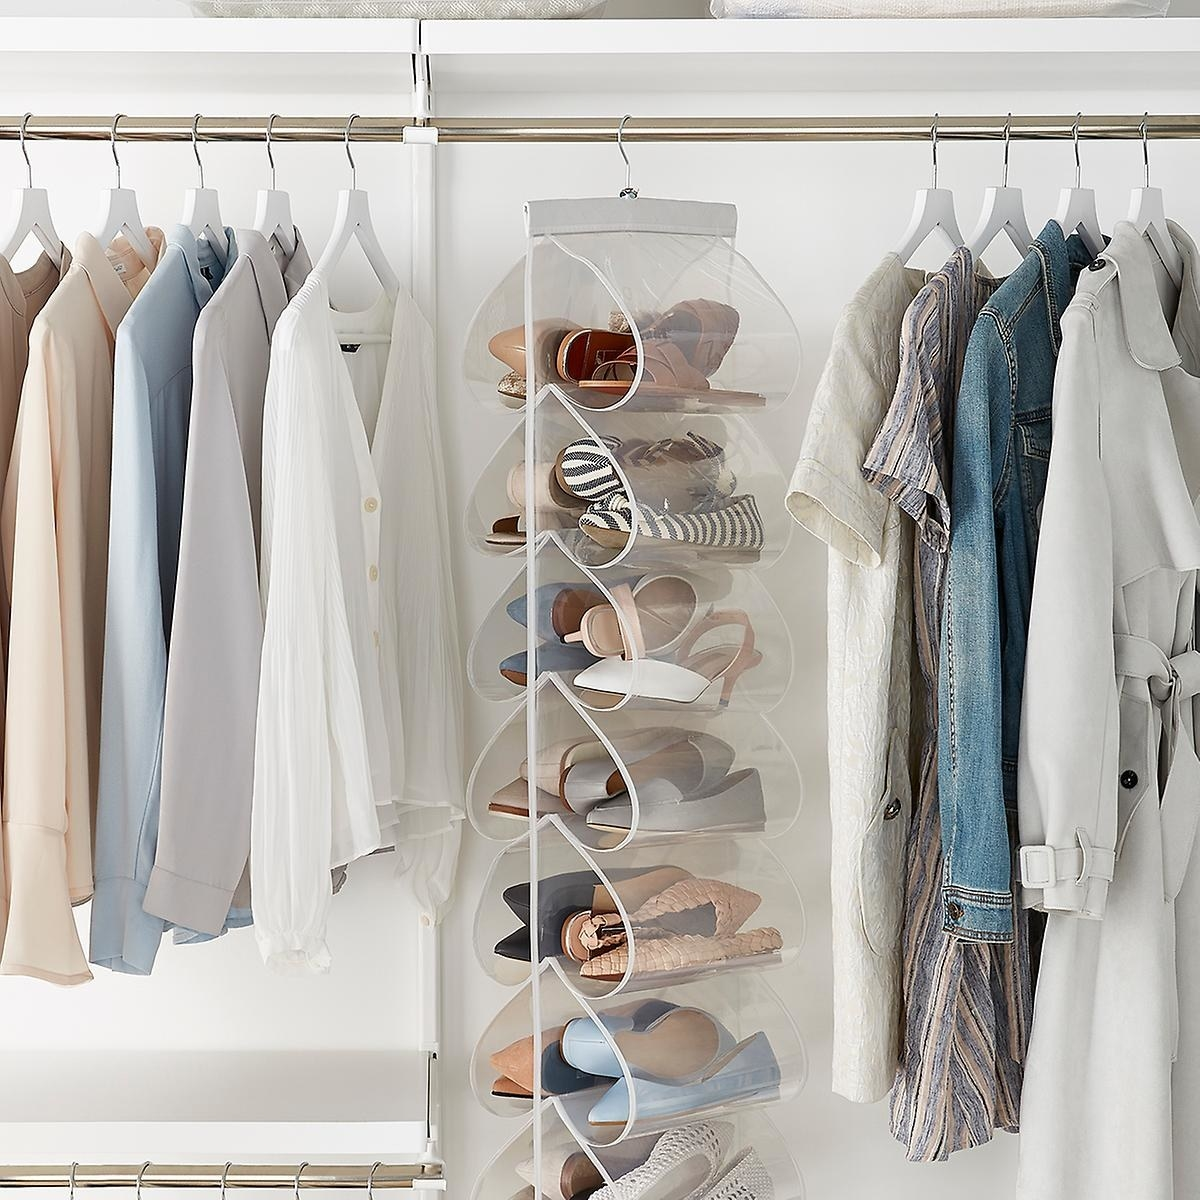 The hanging file with pockets on each side, with each pocket holding one pair of shoes